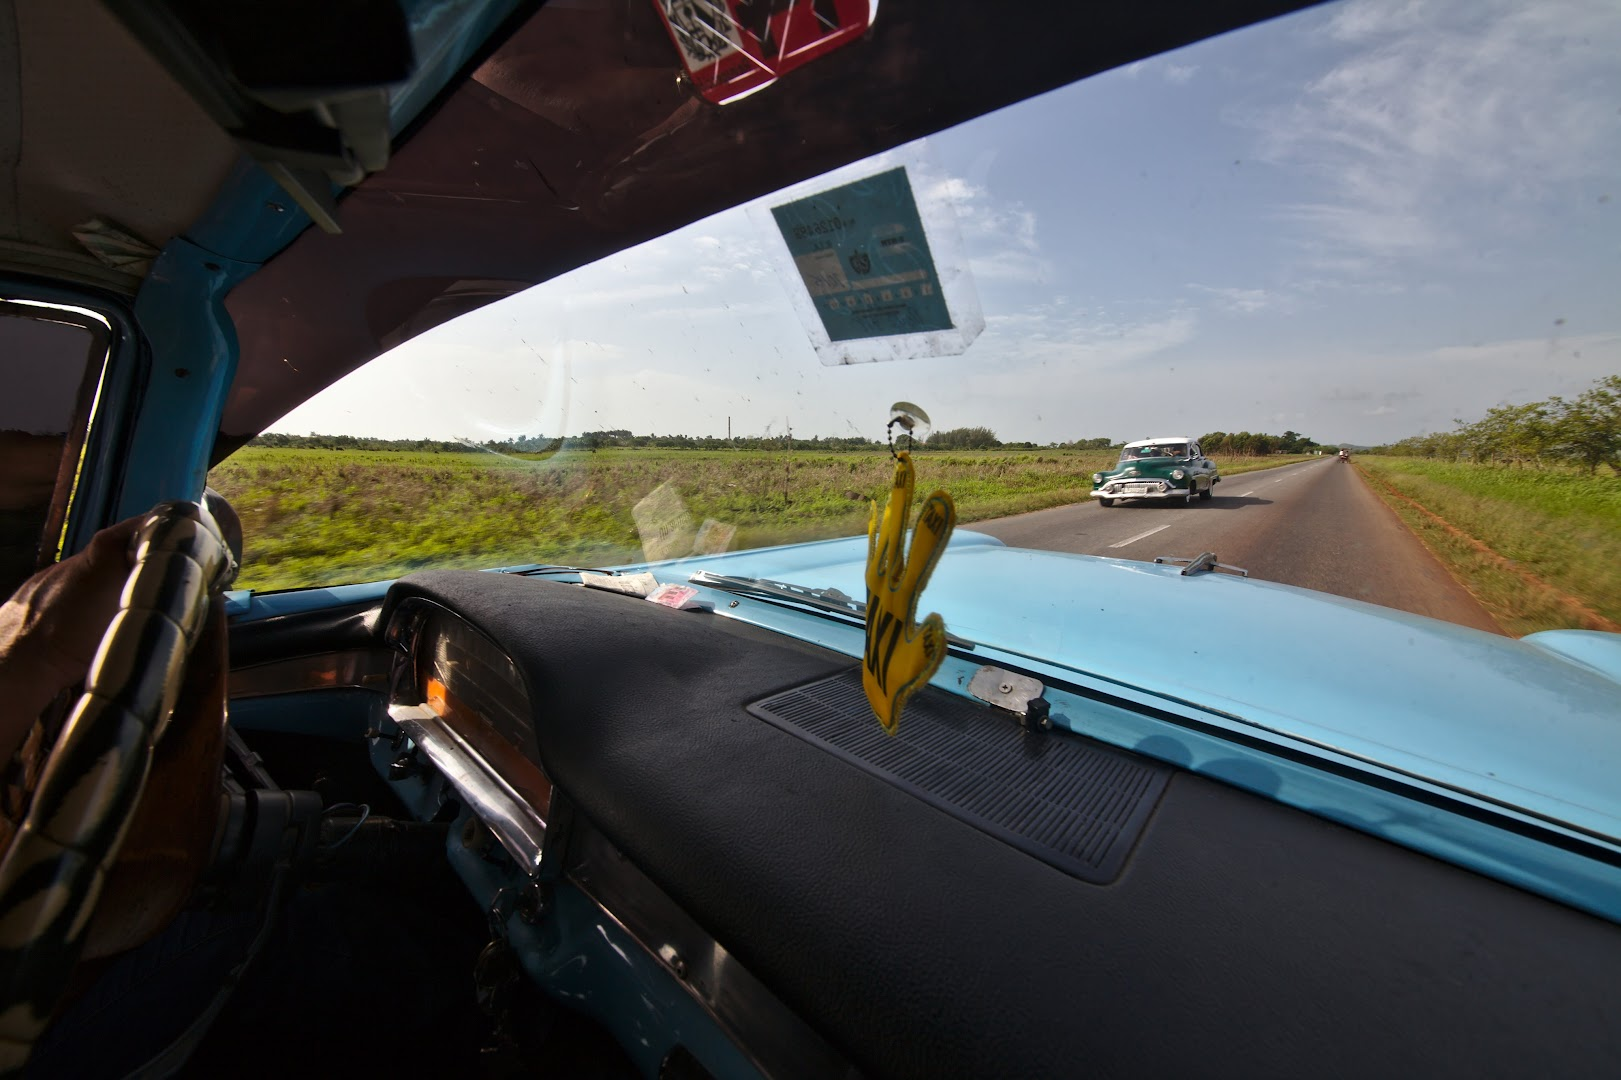 Rural roads of Cuba